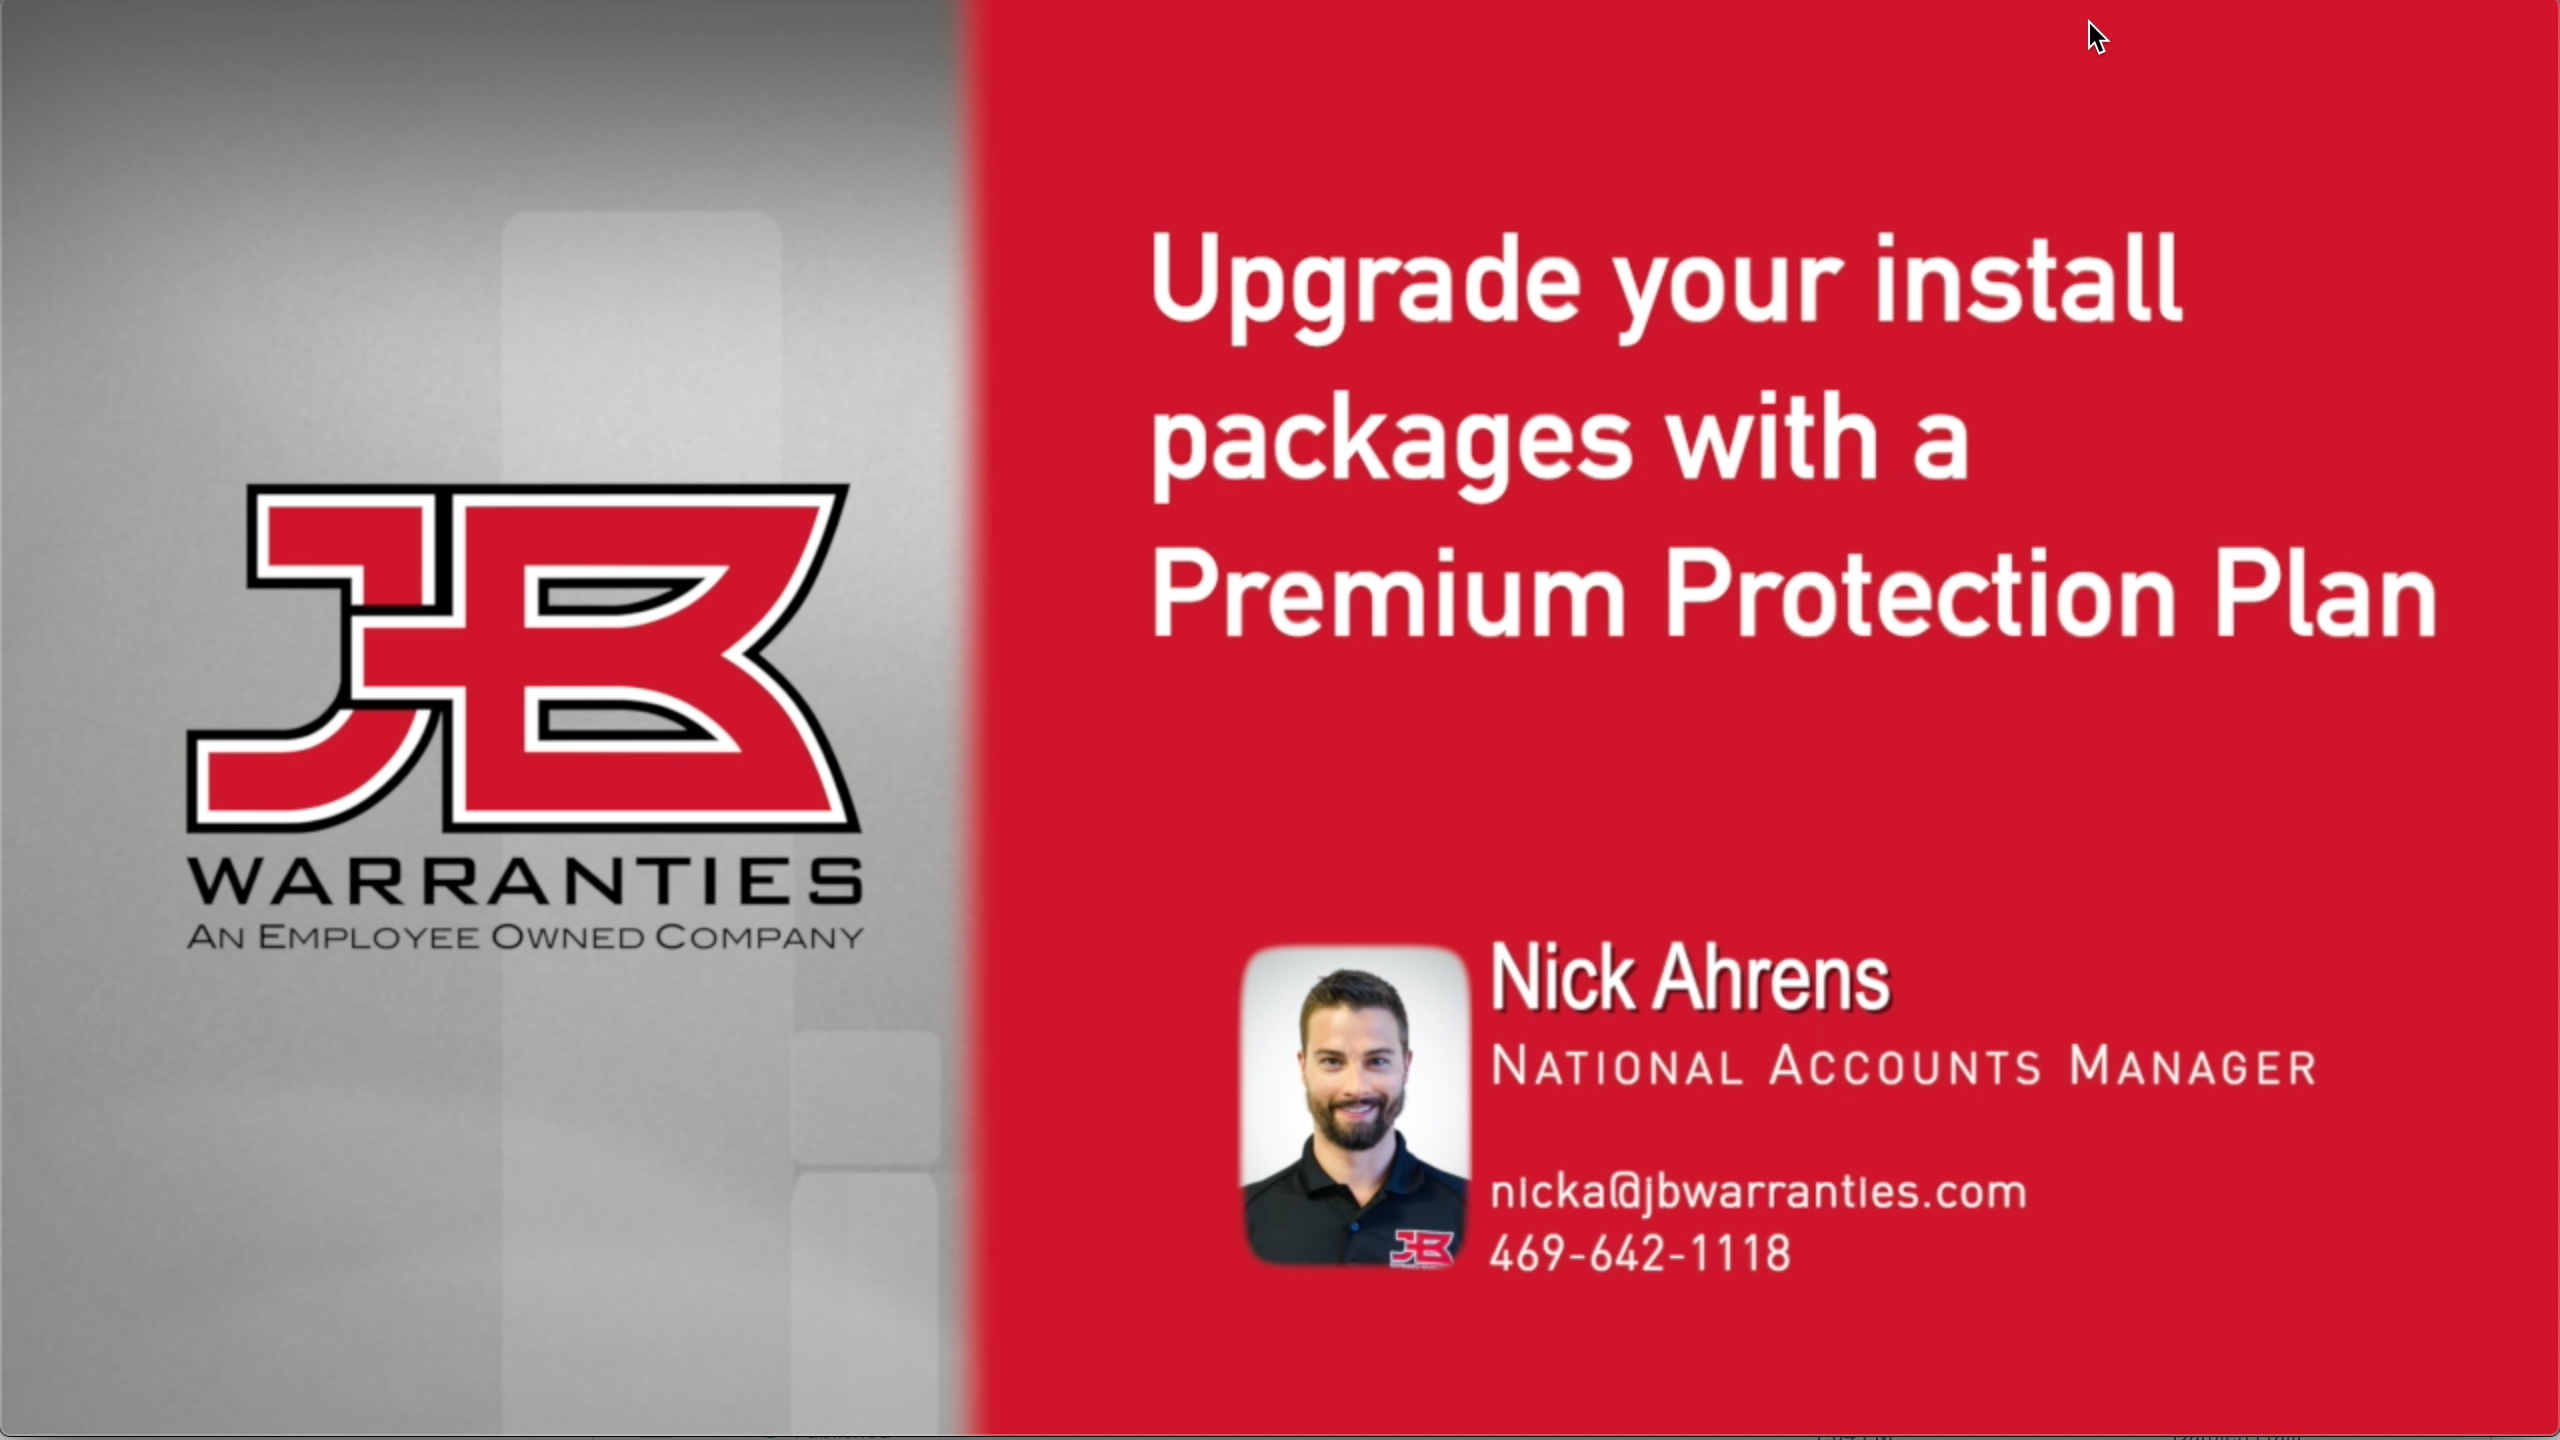 Upgrade your install packages with a Premium Protection Plan